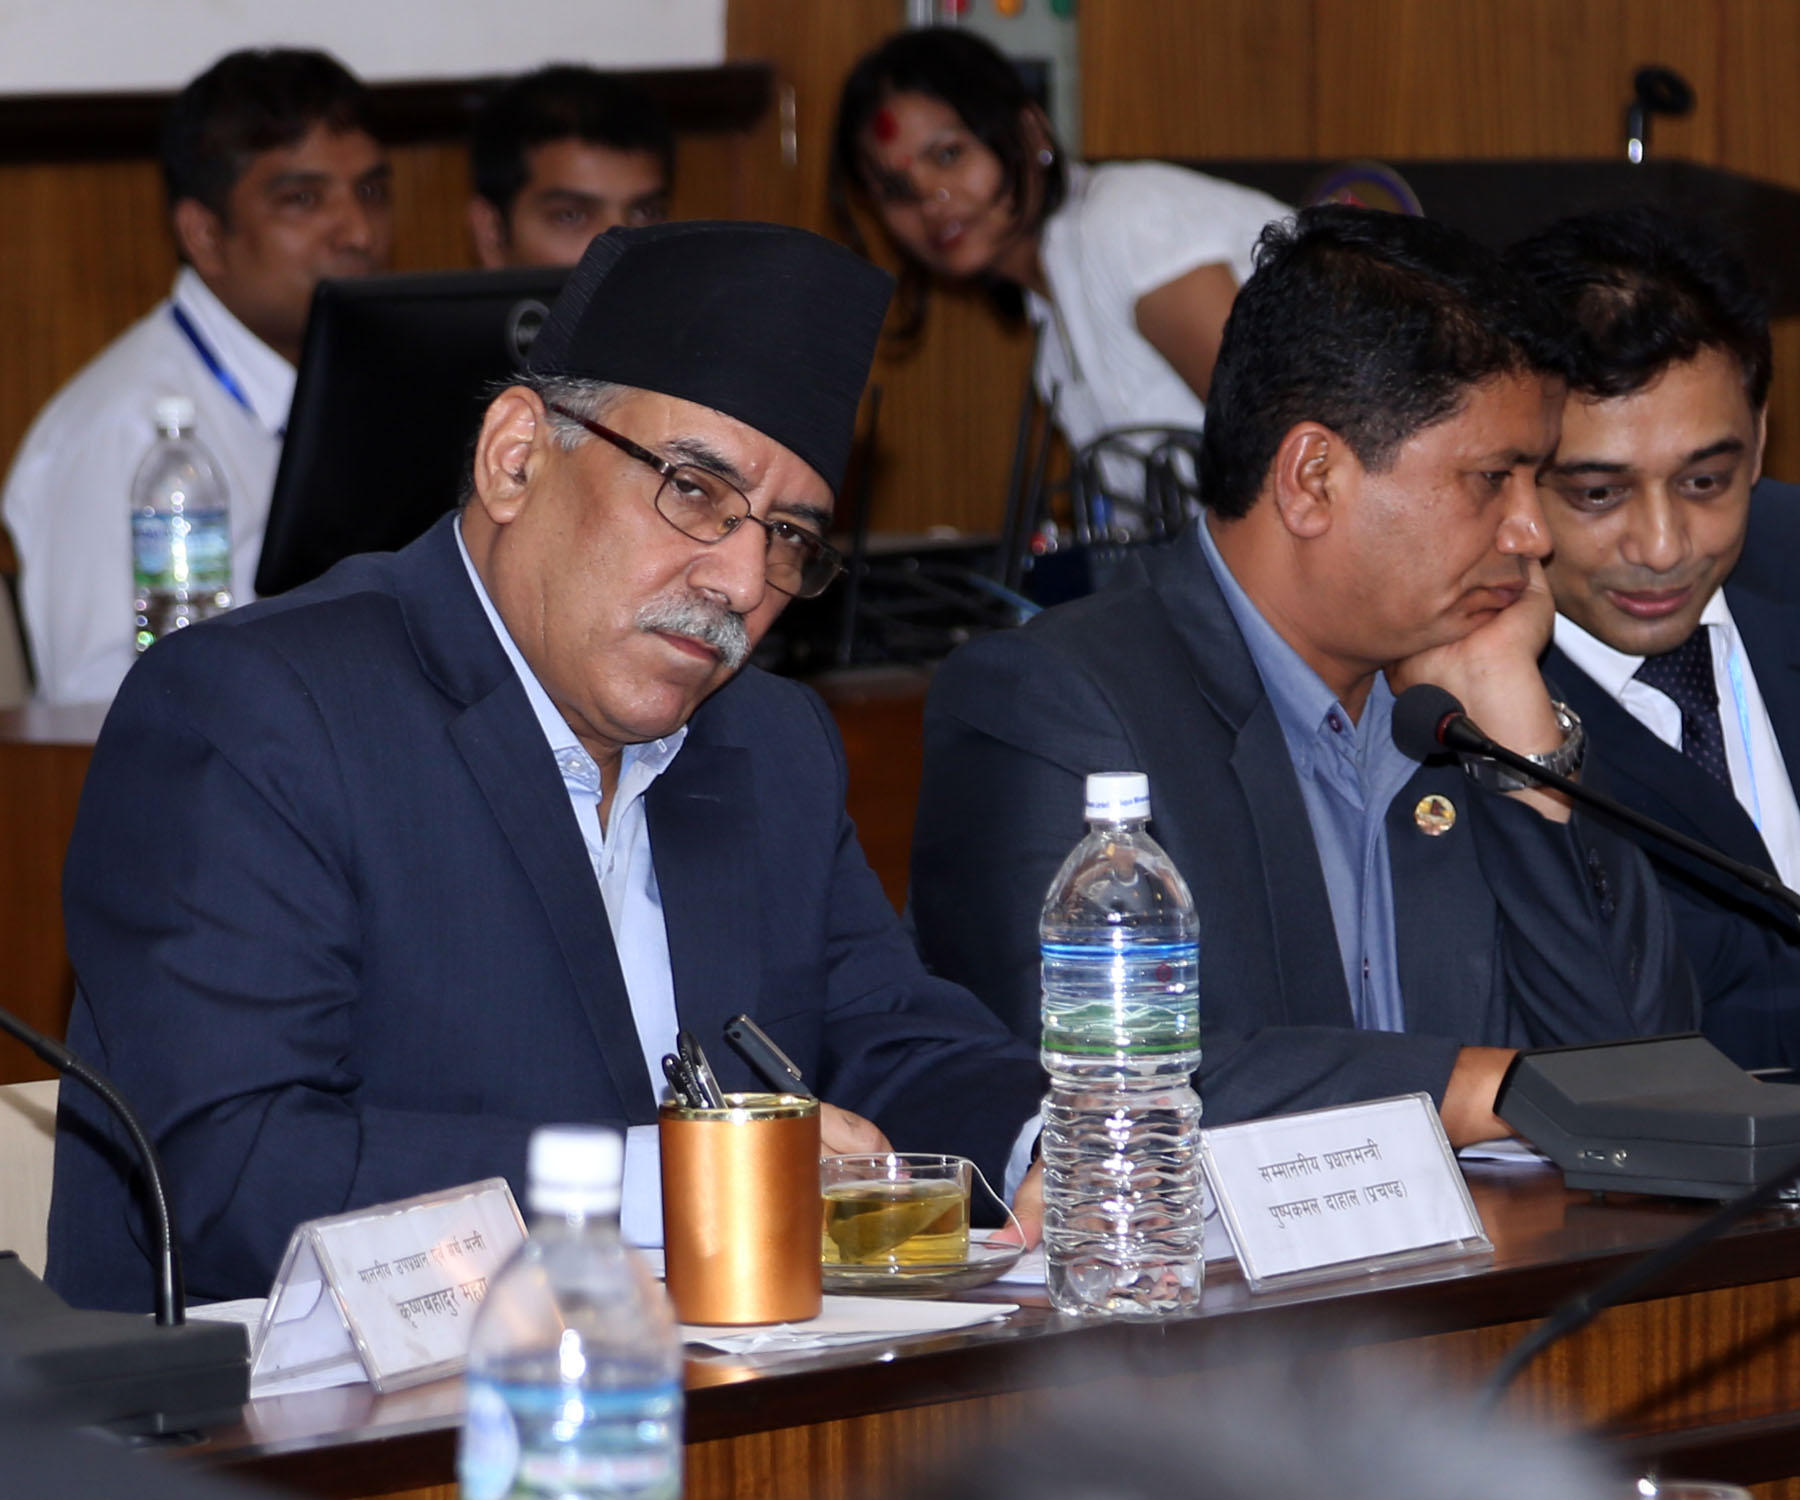 Prime Minister Pushpa Kamal Dahal and Chairperson of Development Committee Rabindra Adhikari at the meeting of Development Committee under the Legislature Parliament held in Singha Durbar, on Monday, September 5, 2016. Photo: RSS